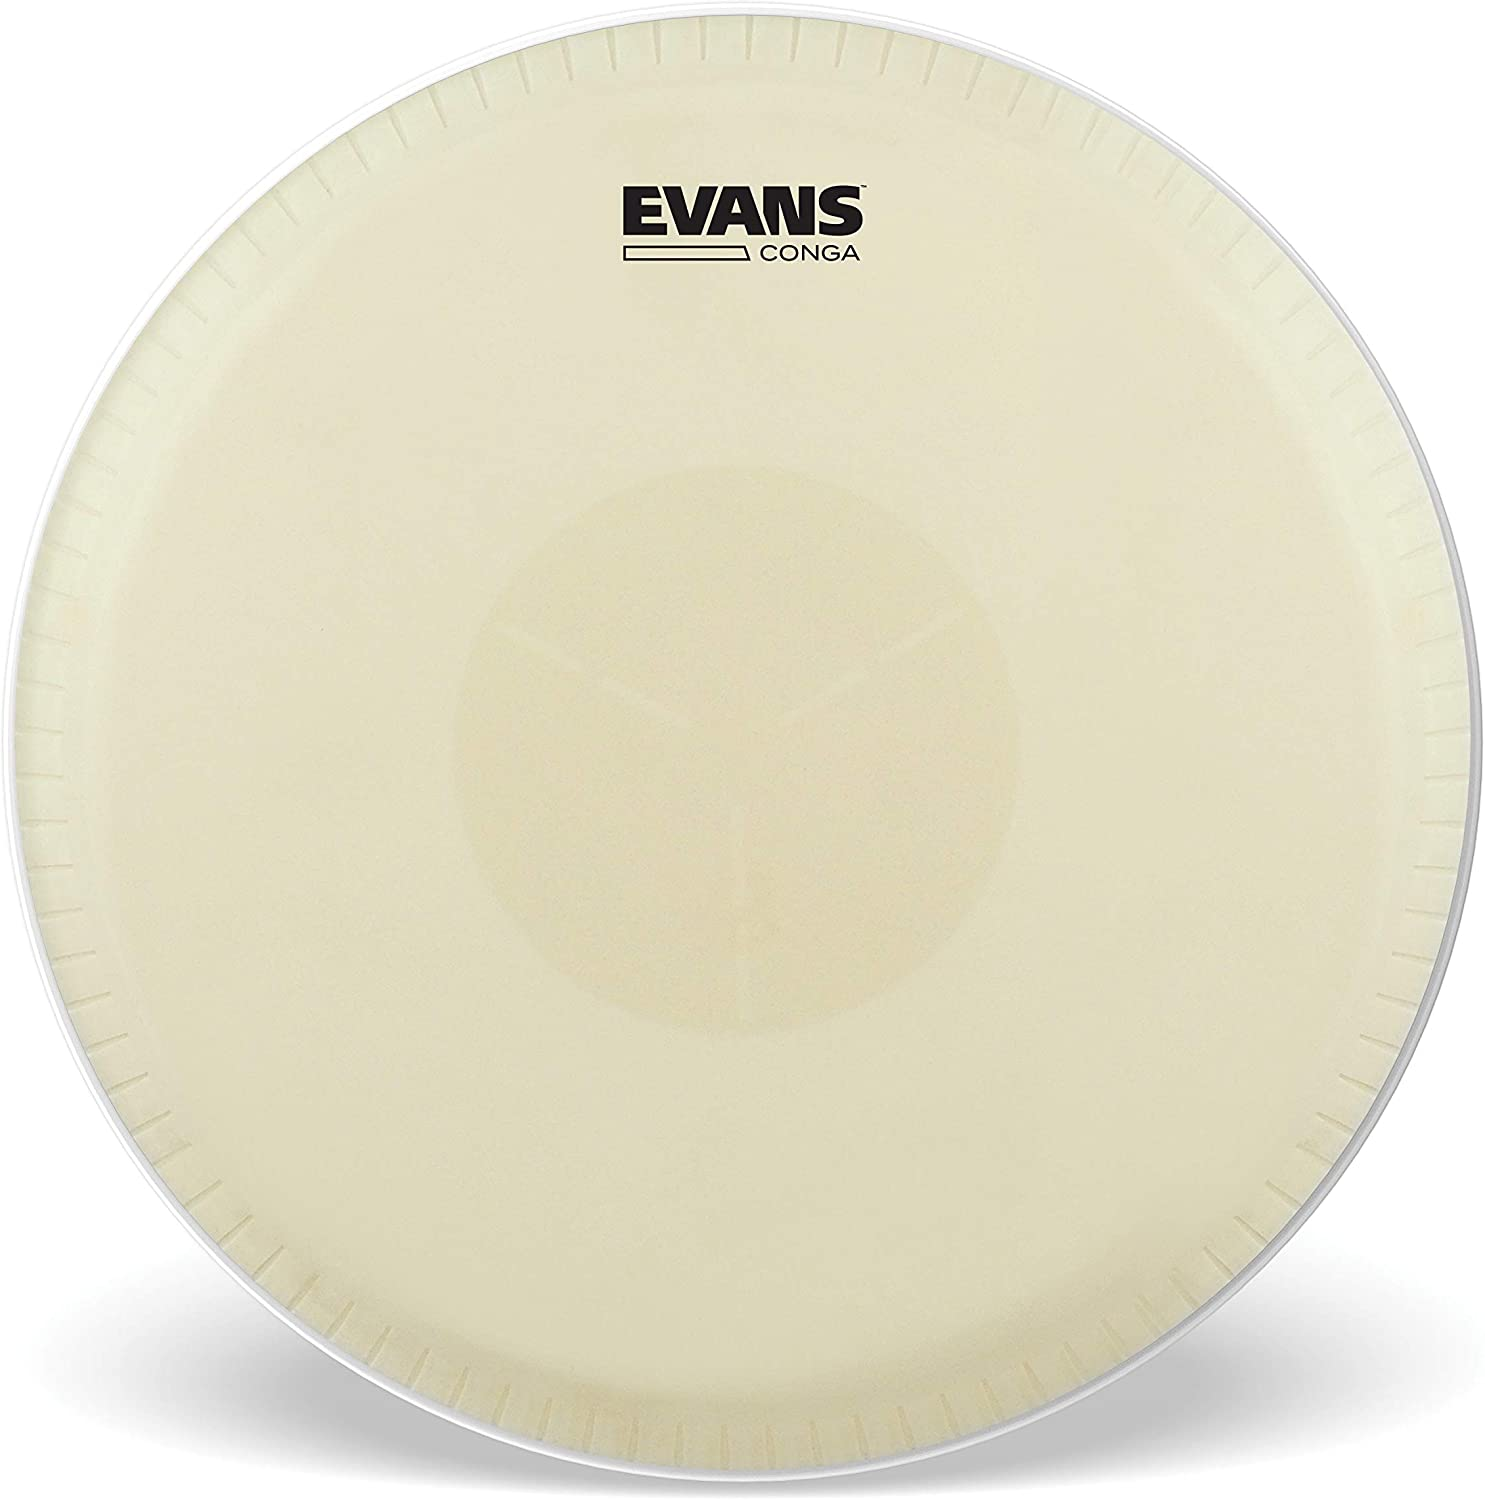 Evans Tri-Center Conga Head New Shipping Free Fits 2 LP 12-1 Inch Trust